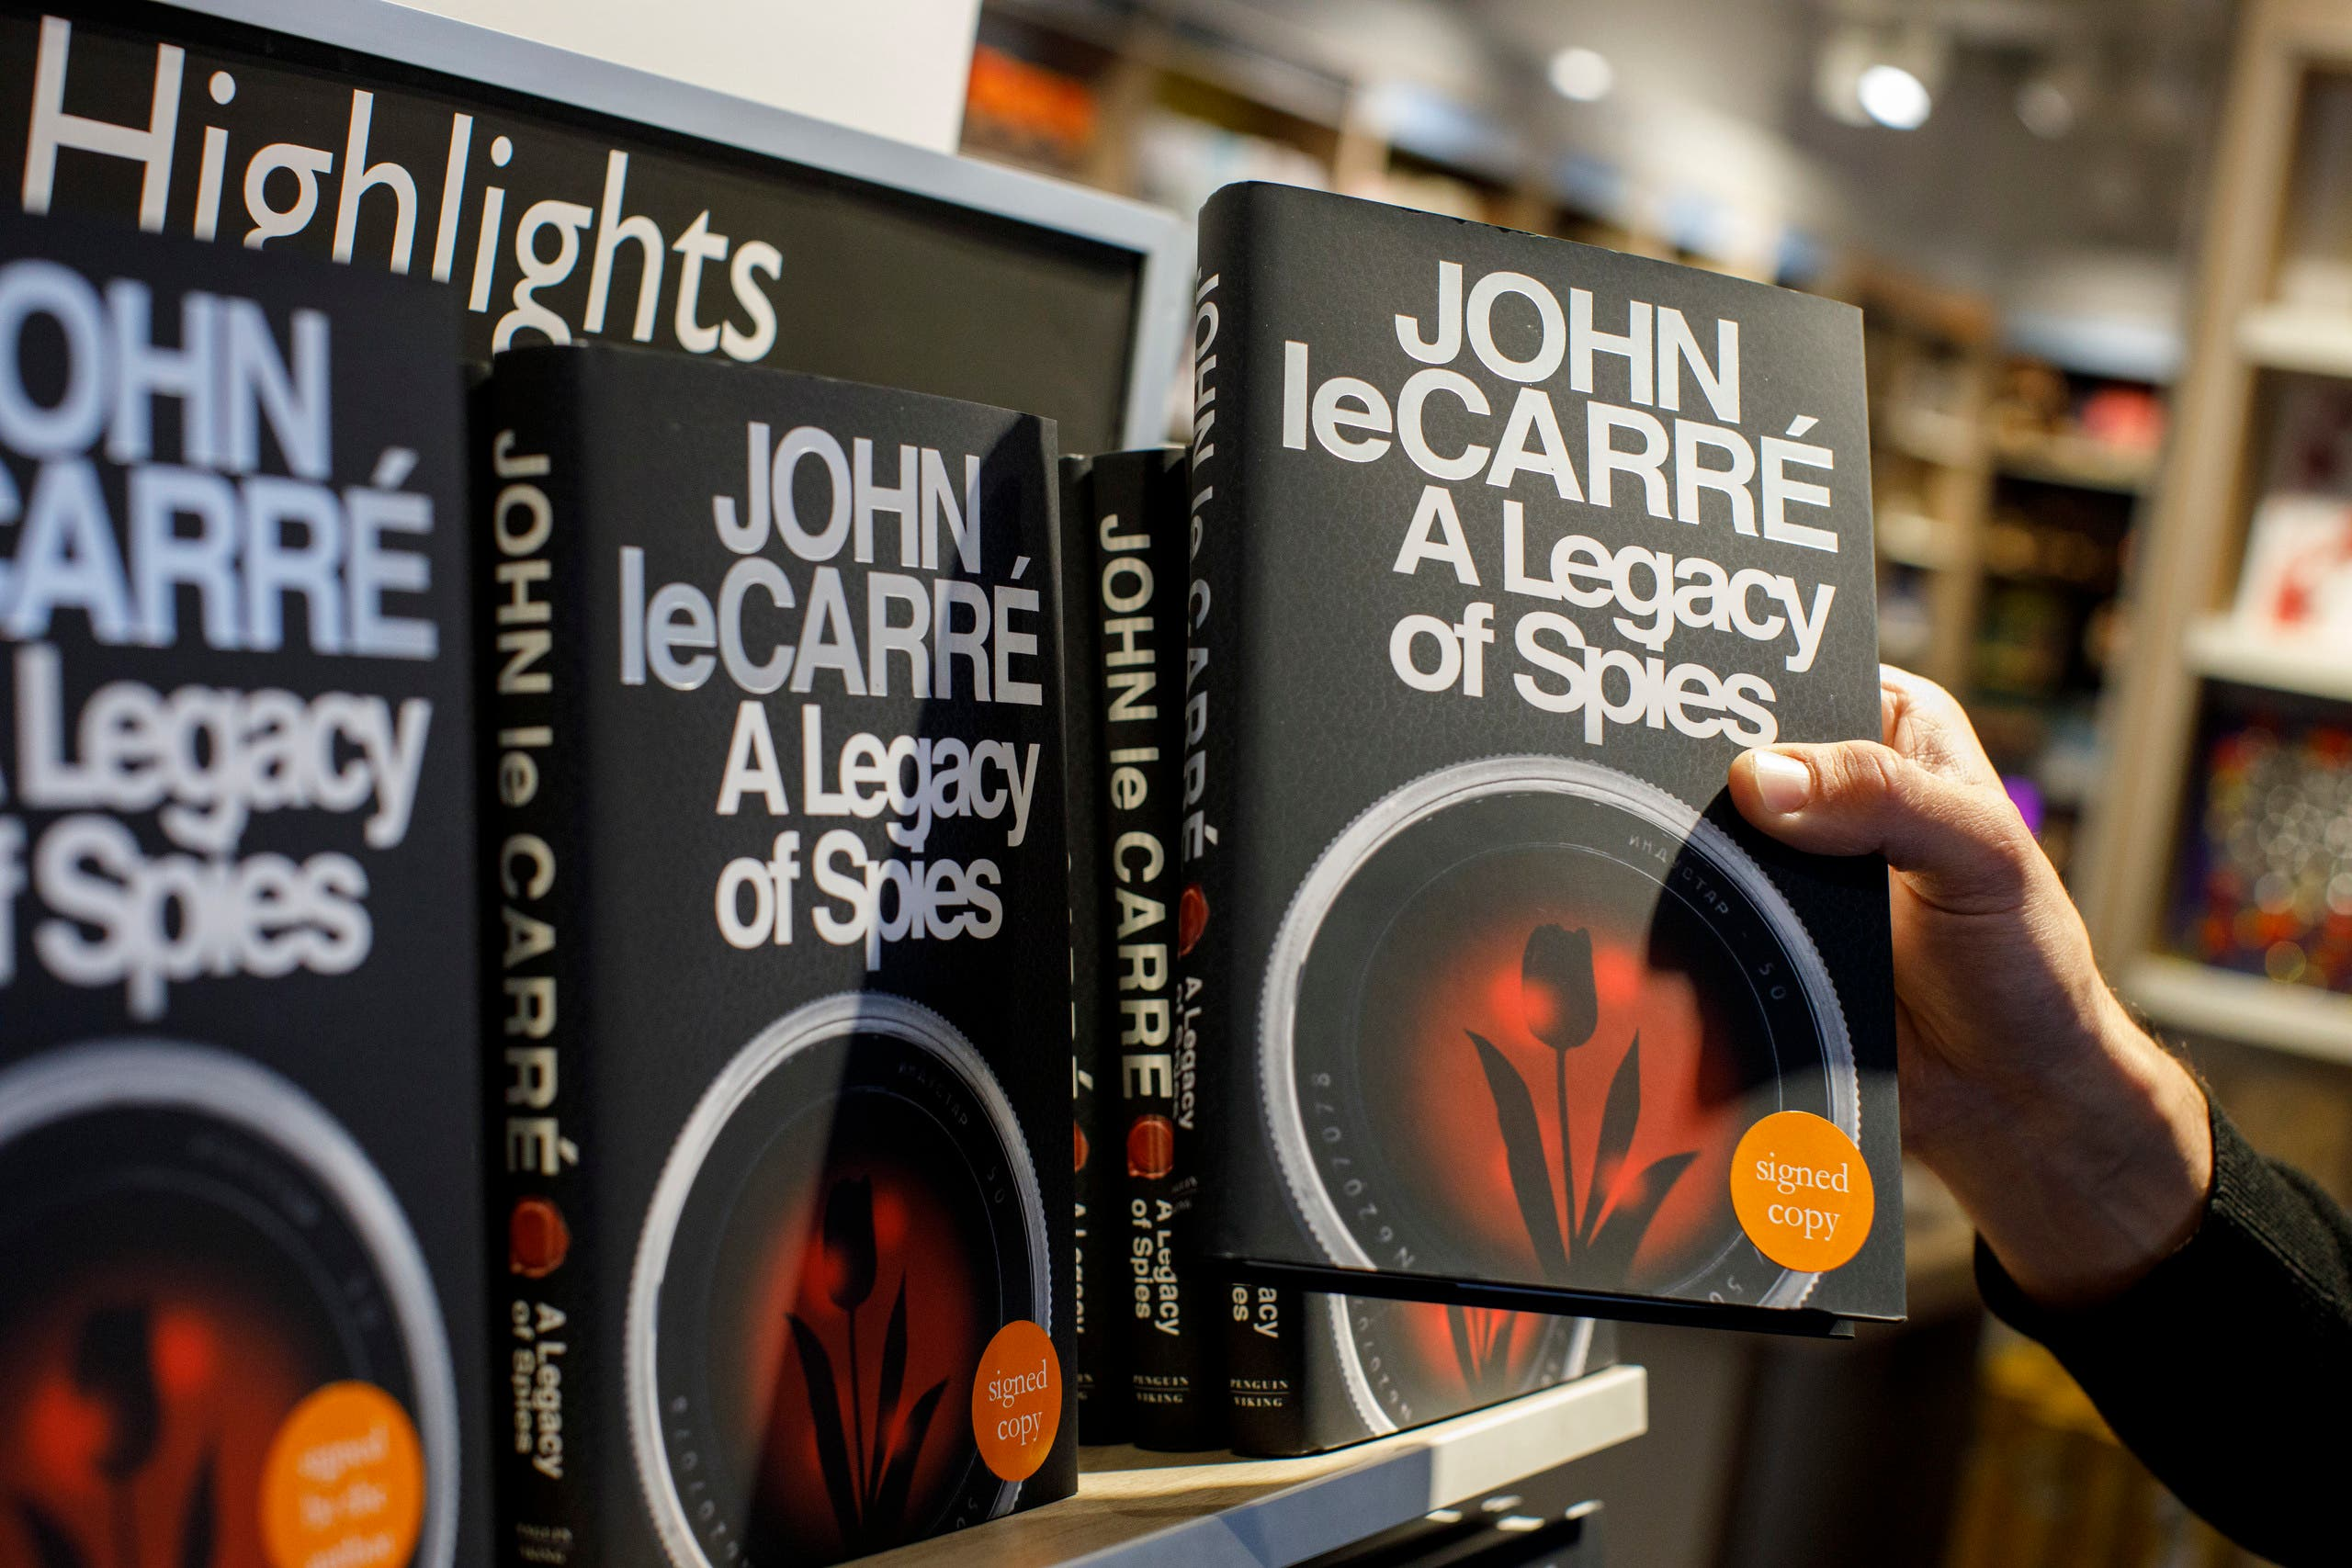 Copies of 'A legacy of Spies' a new novel by English author John Le Carre are on sale at a bookshop in central London on September 7, 2017. (AFP)